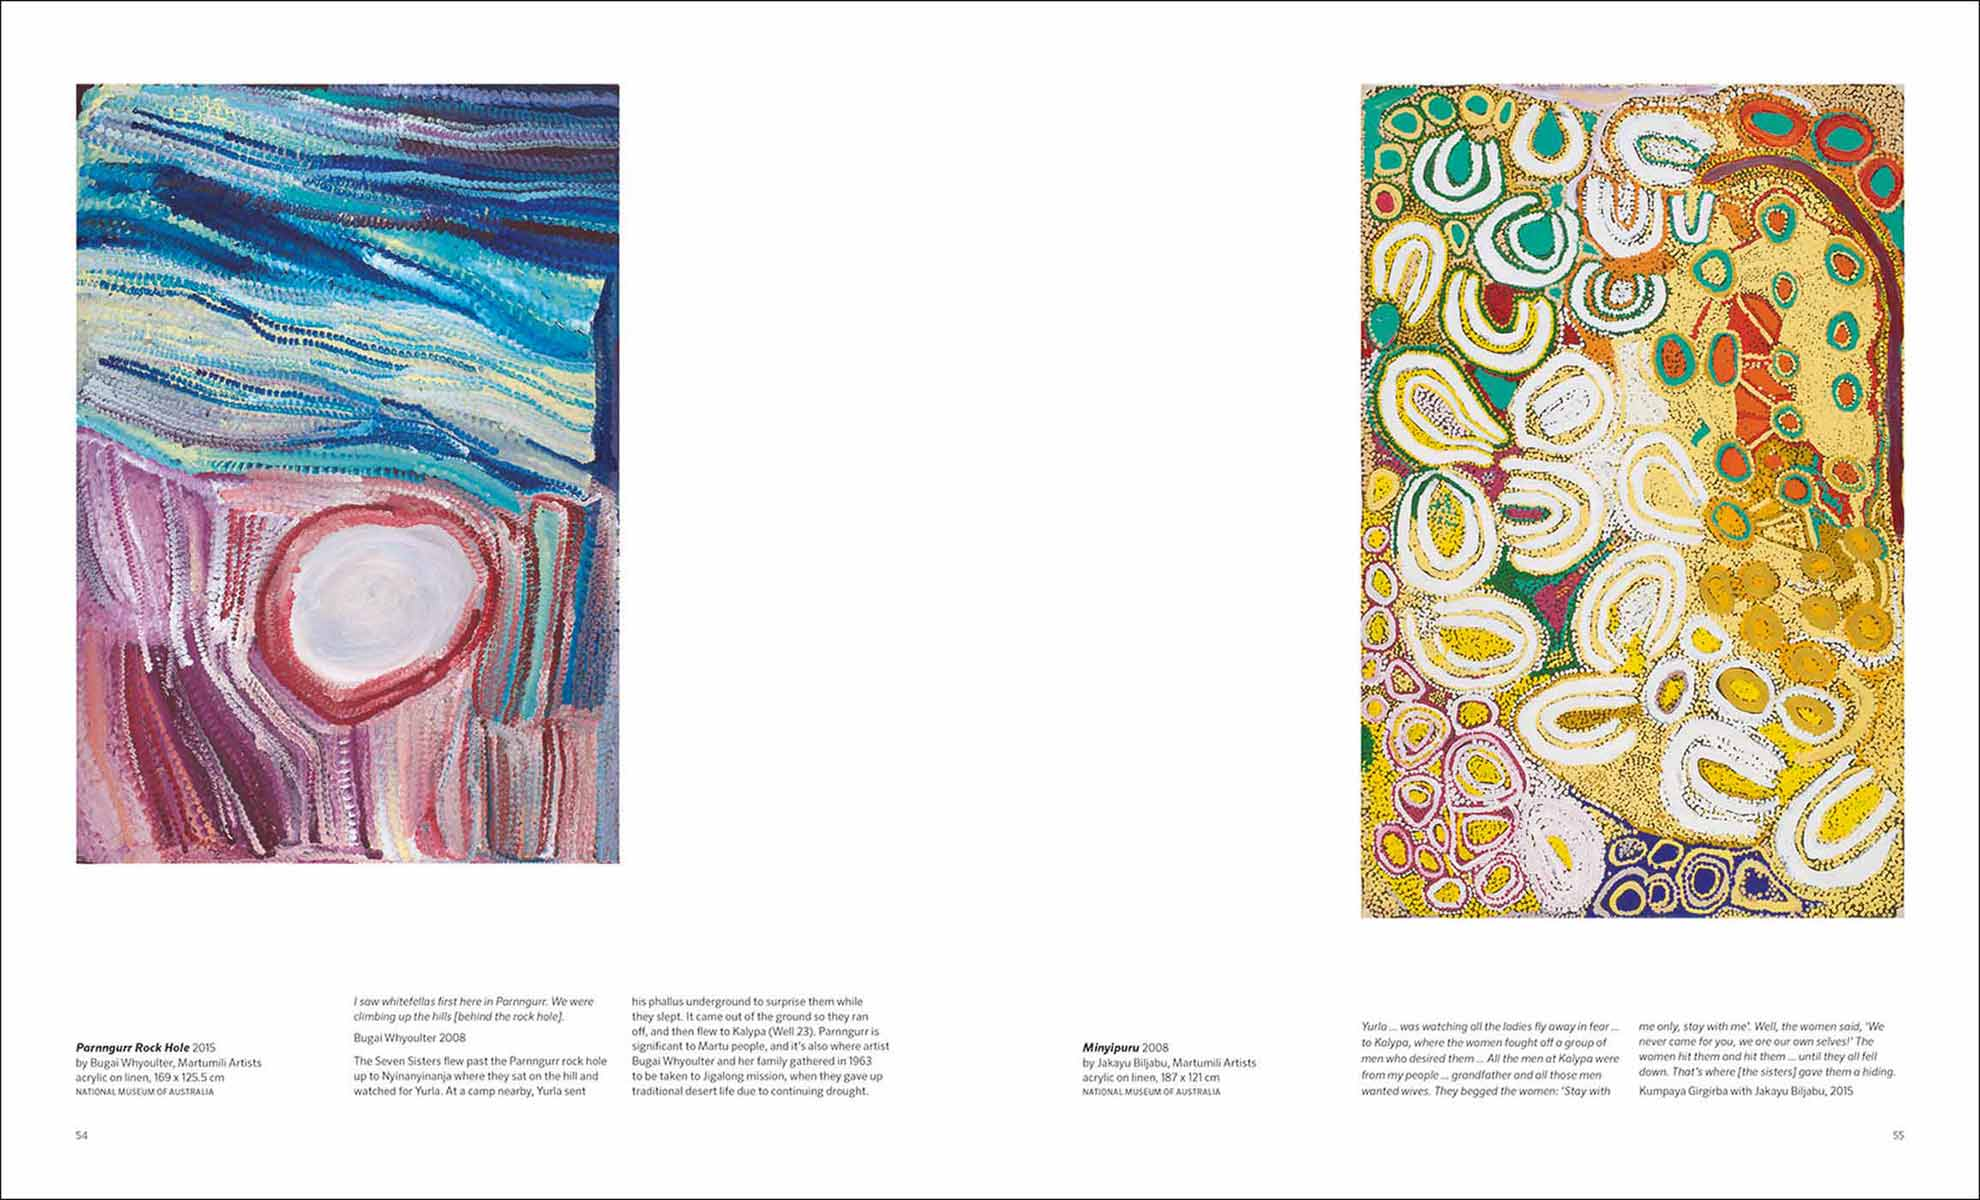 Songlines catalogue spread with images of 'Parnngurr Rock Hole' by Bugai Whyoulter and 'Minyipuru' by Jakayu Biljabu  - click to view larger image